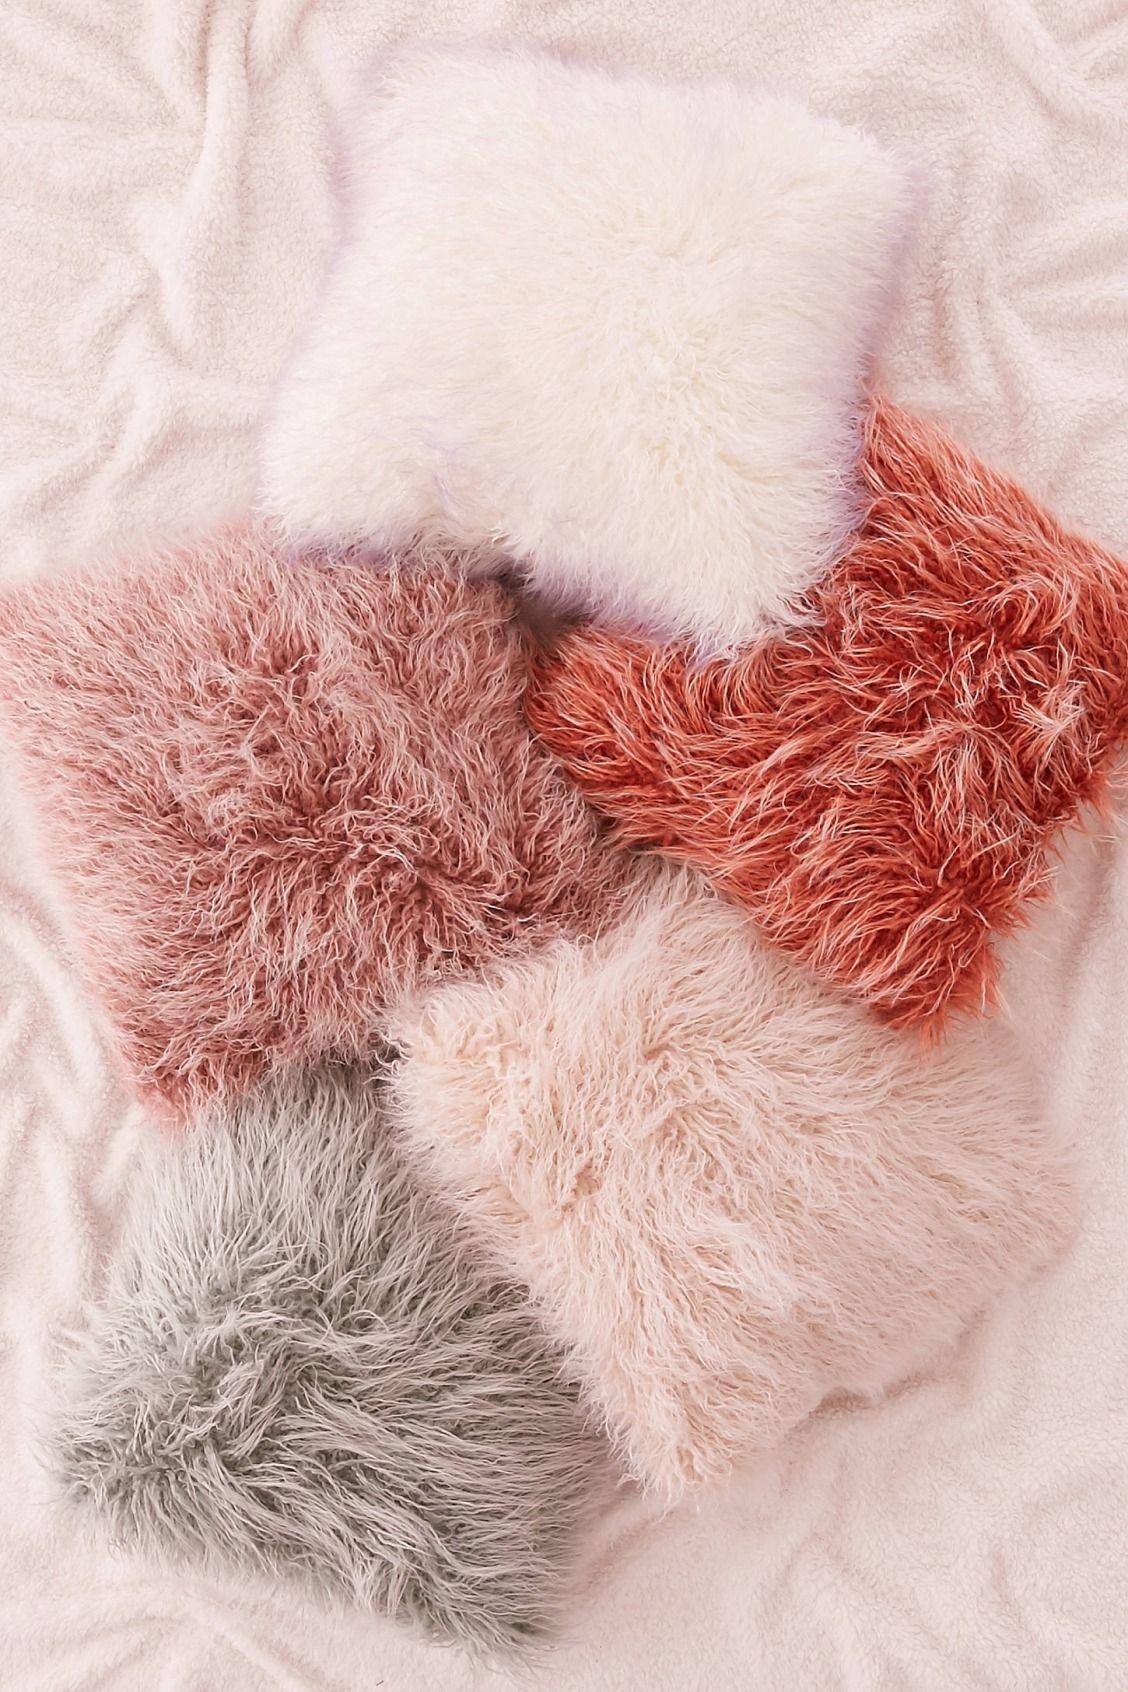 Jackets & Coats Women's Clothing New Arrival Lady Natural Sheep Fur Patchwork Blanket Light Color Rugs Sofa Cushion